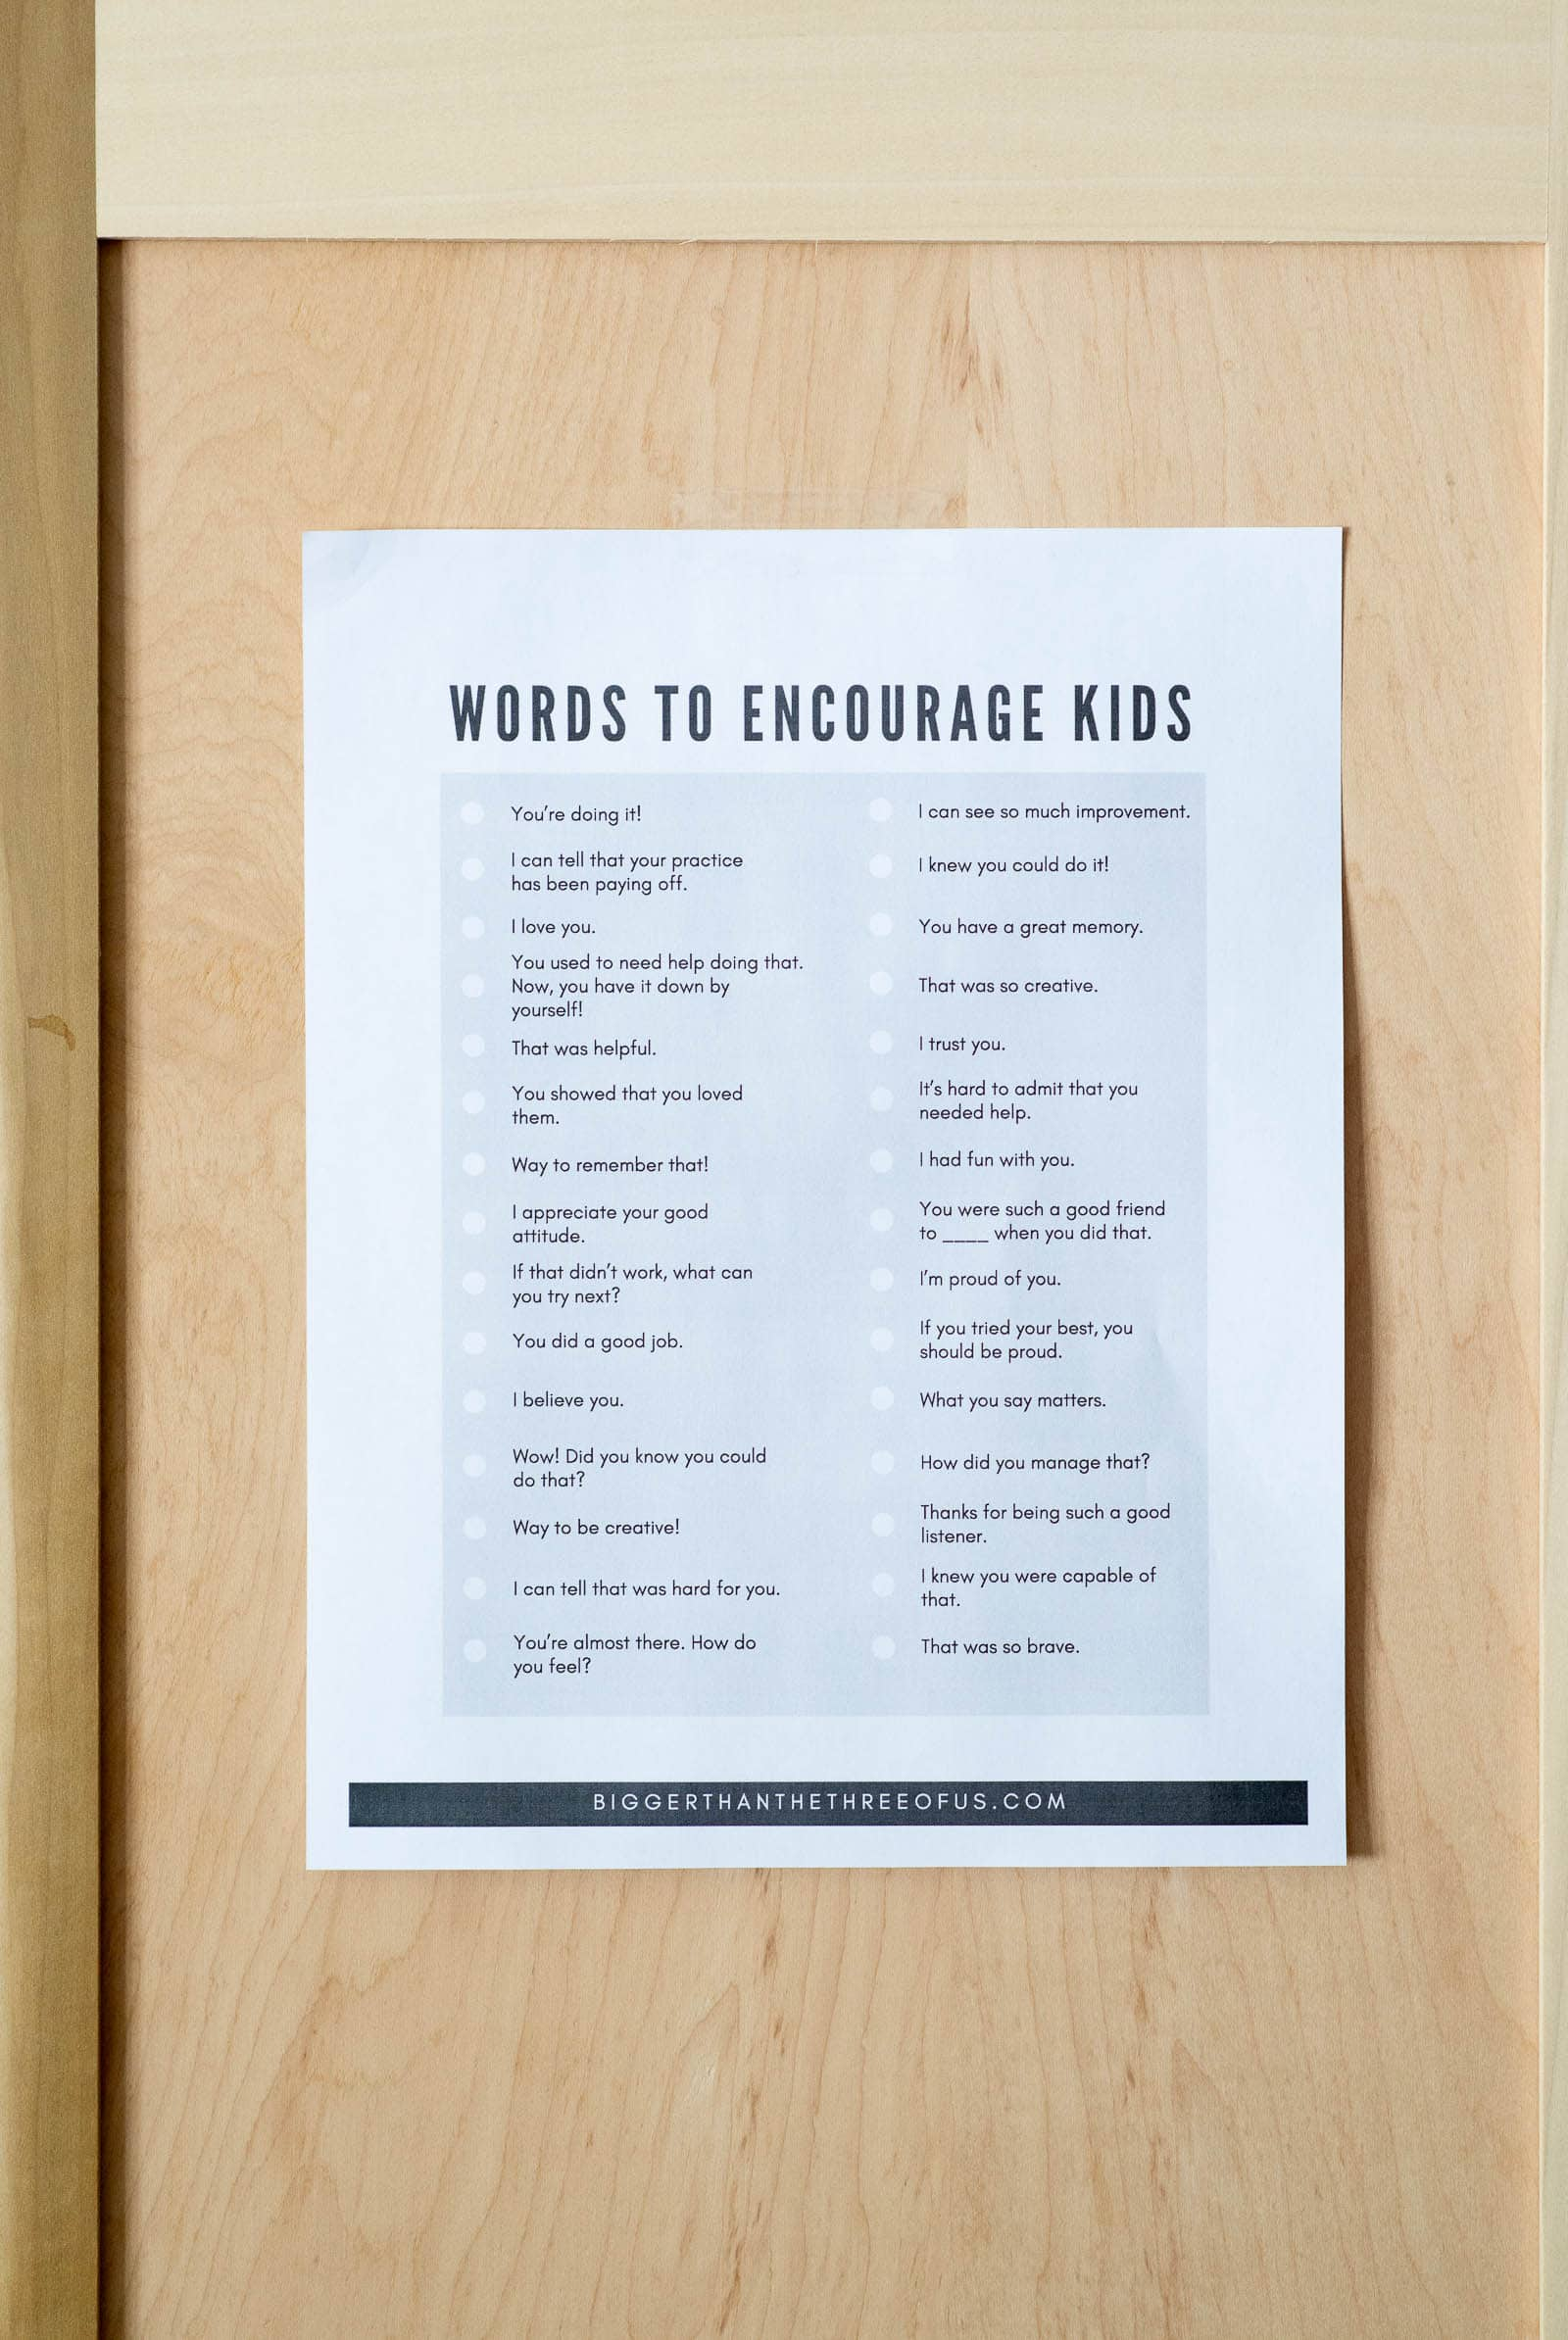 Words to encourage kids